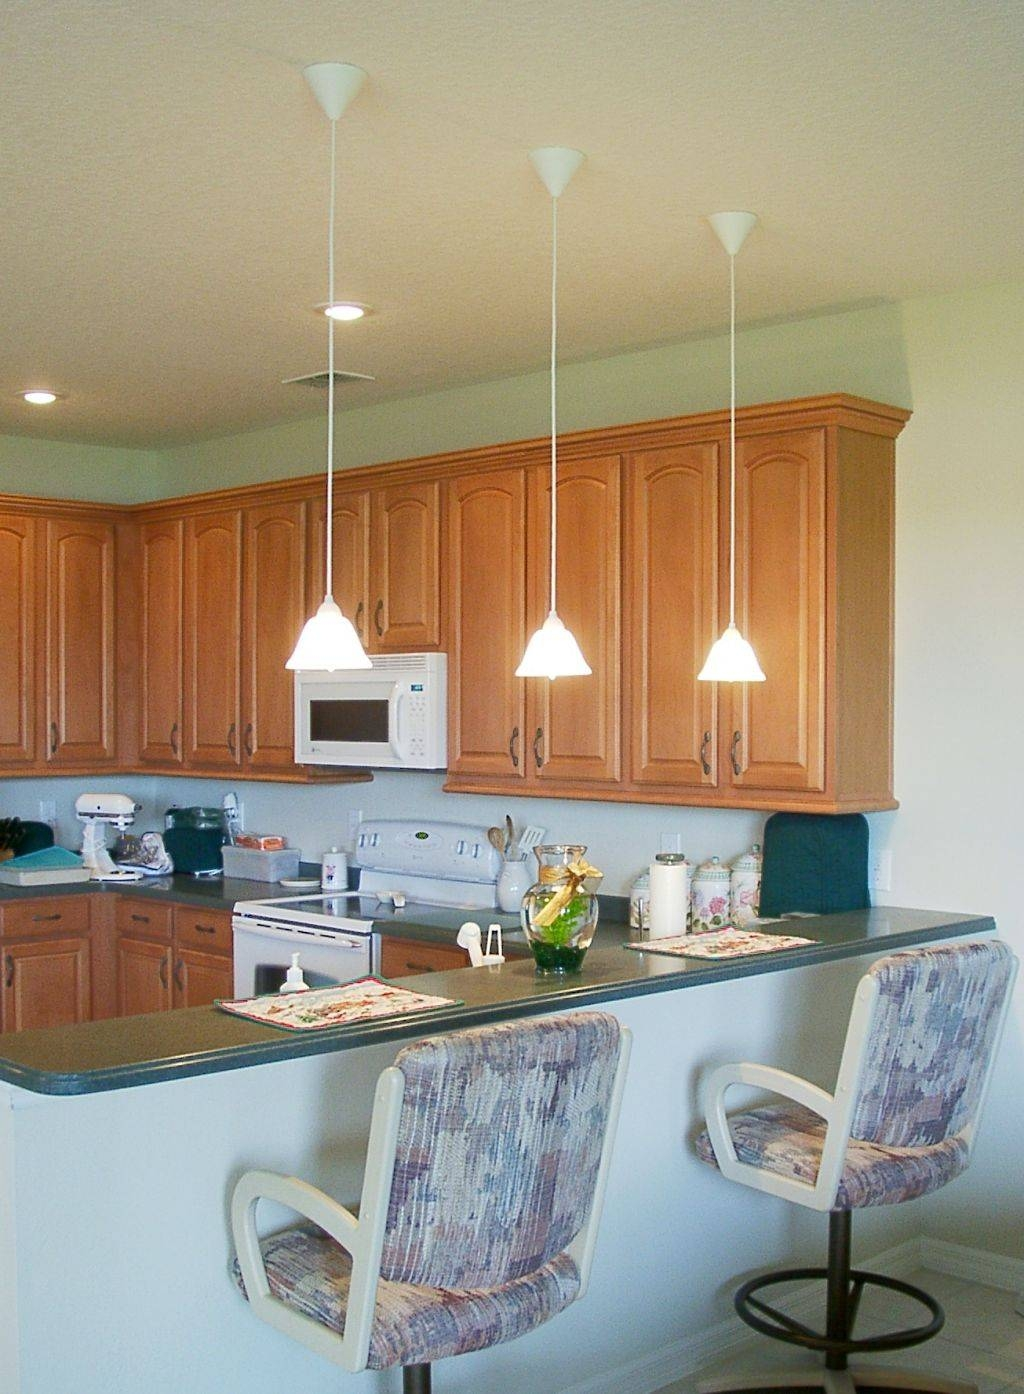 Kitchen Design: Awesome Pendant Lights Over Kitchen Island Large in Mini Lights Pendant for Kitchen Island (Image 5 of 15)